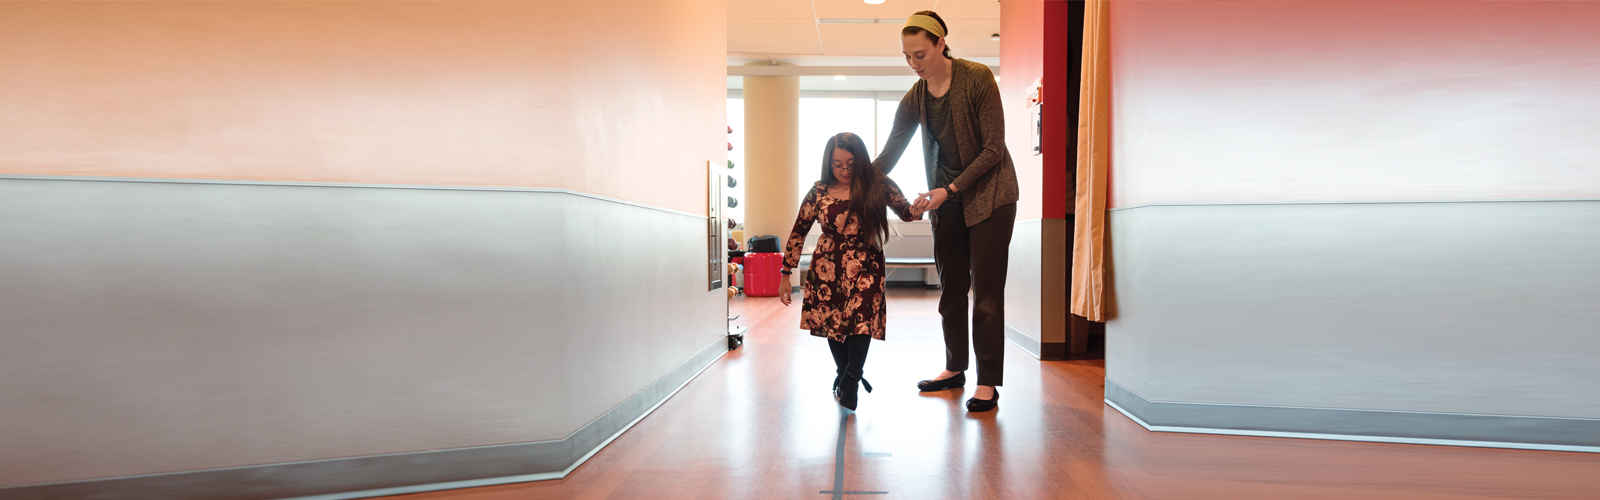 Shannon and her therapist walk down a corridor at Kennedy Krieger